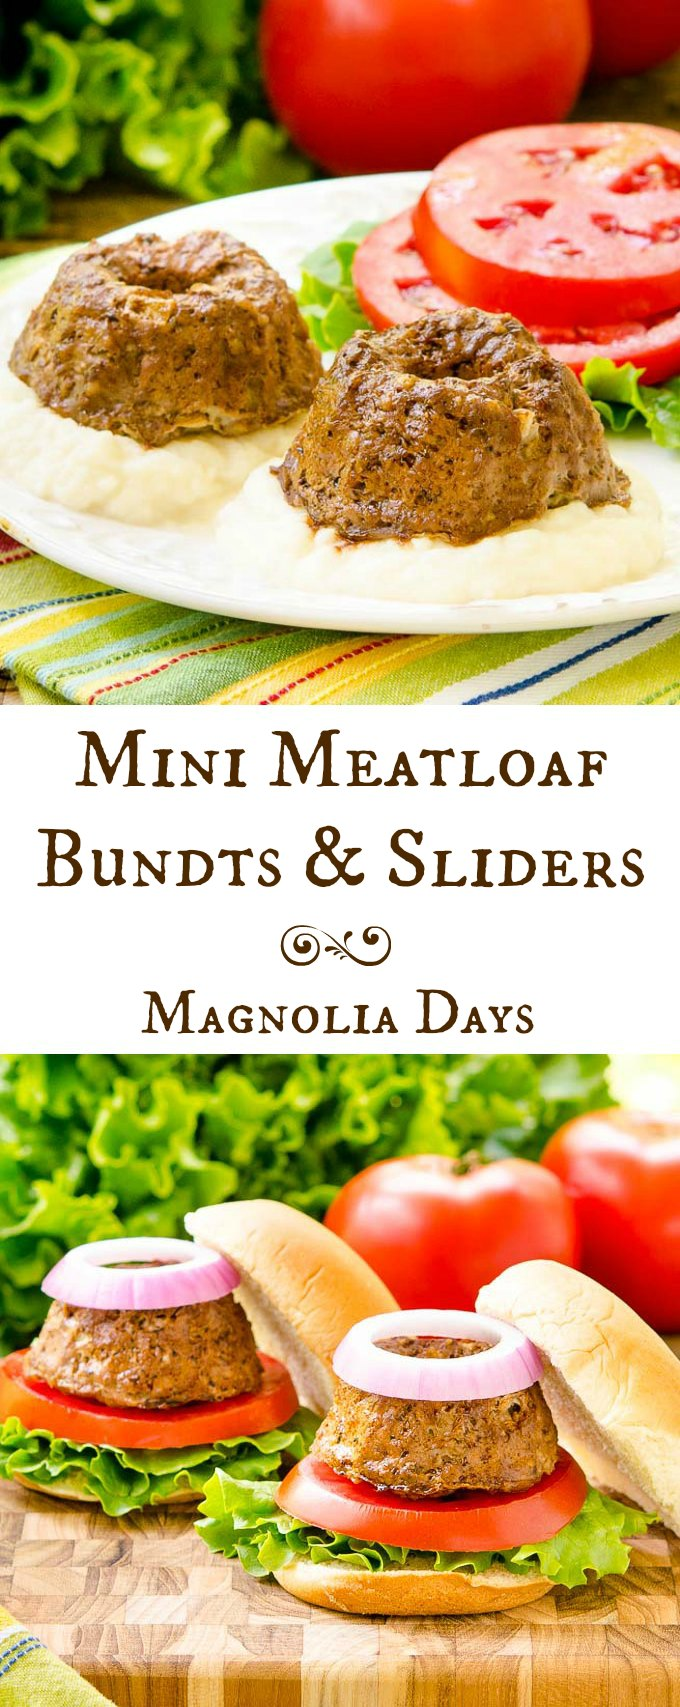 Mini Meatloaf Bundts and Sliders are a fun way to serve a classic dish. It brings new life to the old with a surprising and unique twist.